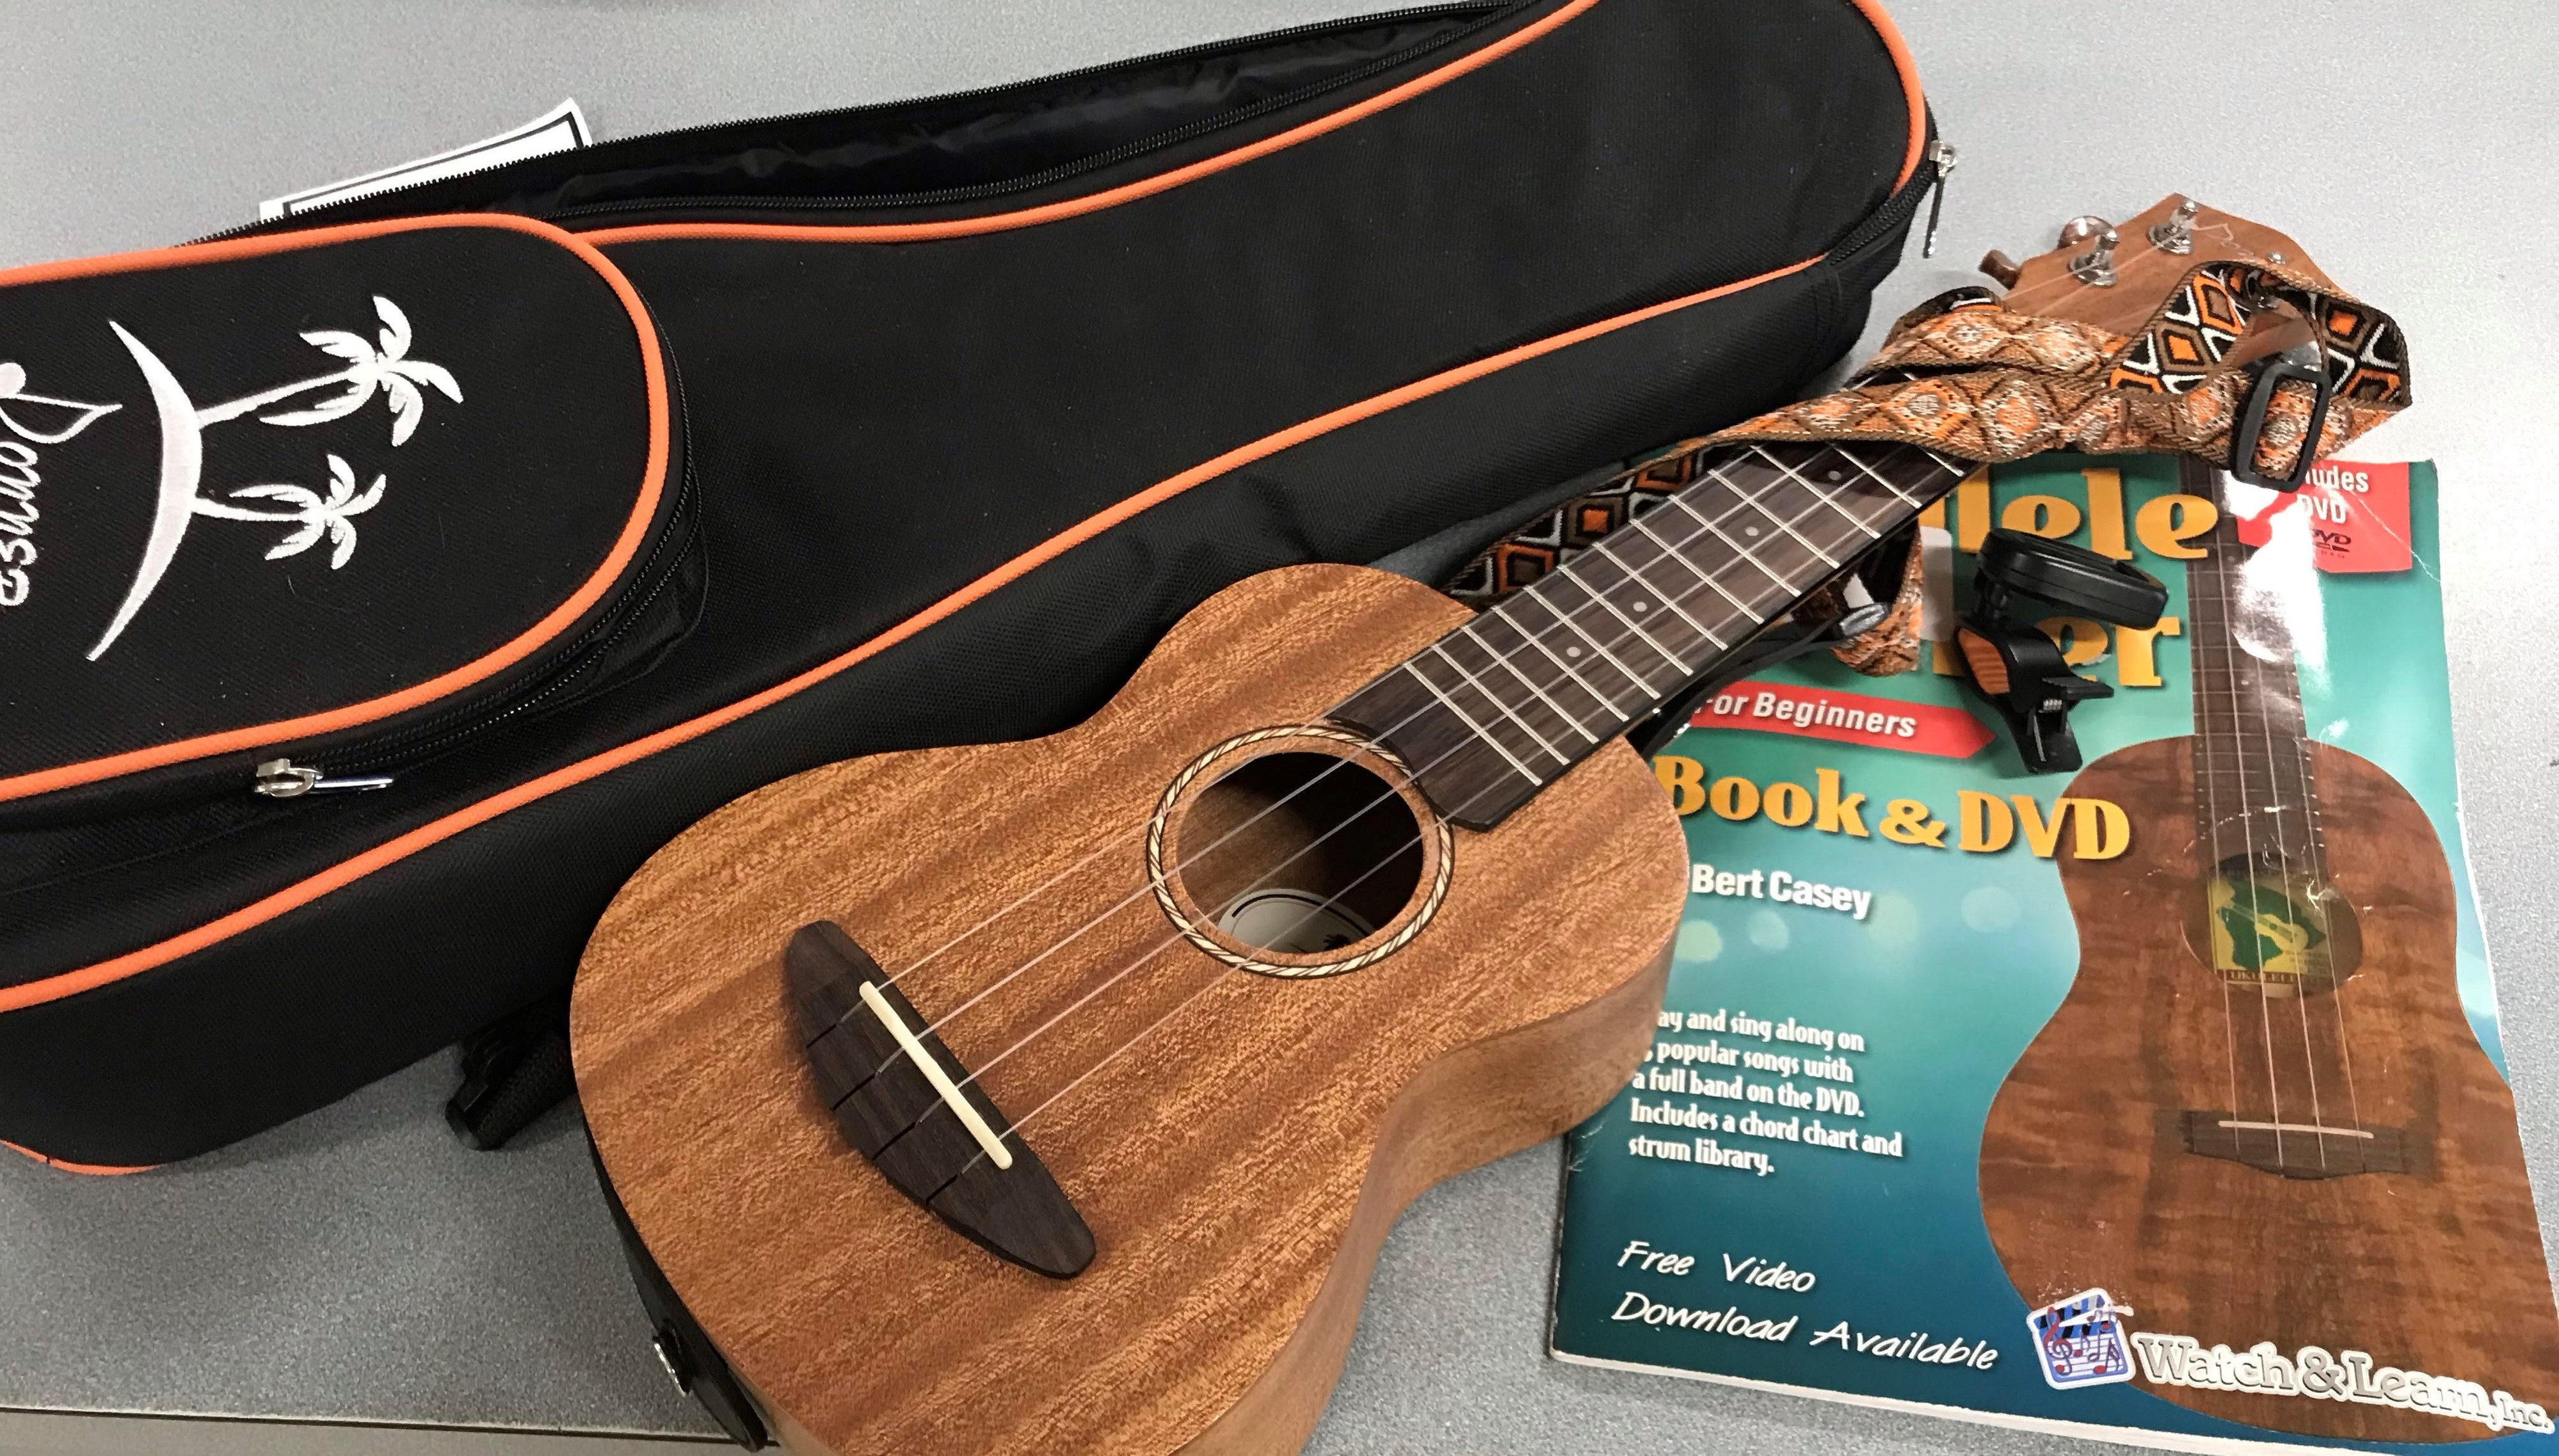 image of wooden ukulele with case, tuner, and songbook